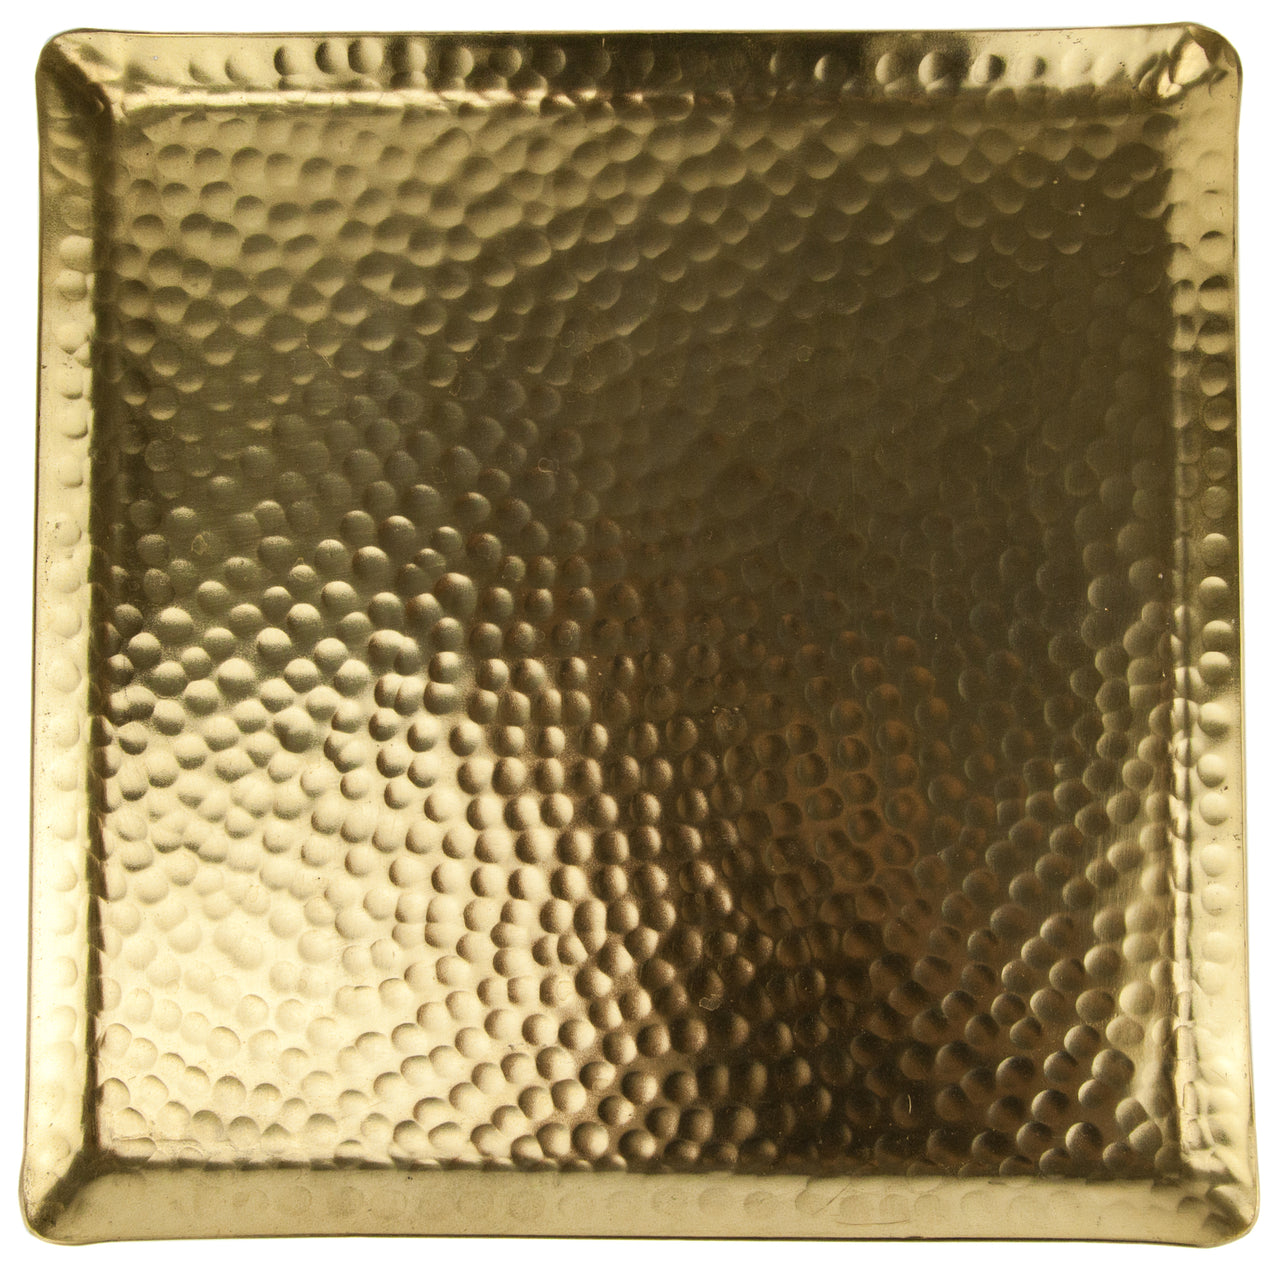 Hammered Gold Metal Tray | The Hour Shop Home Bar Decor